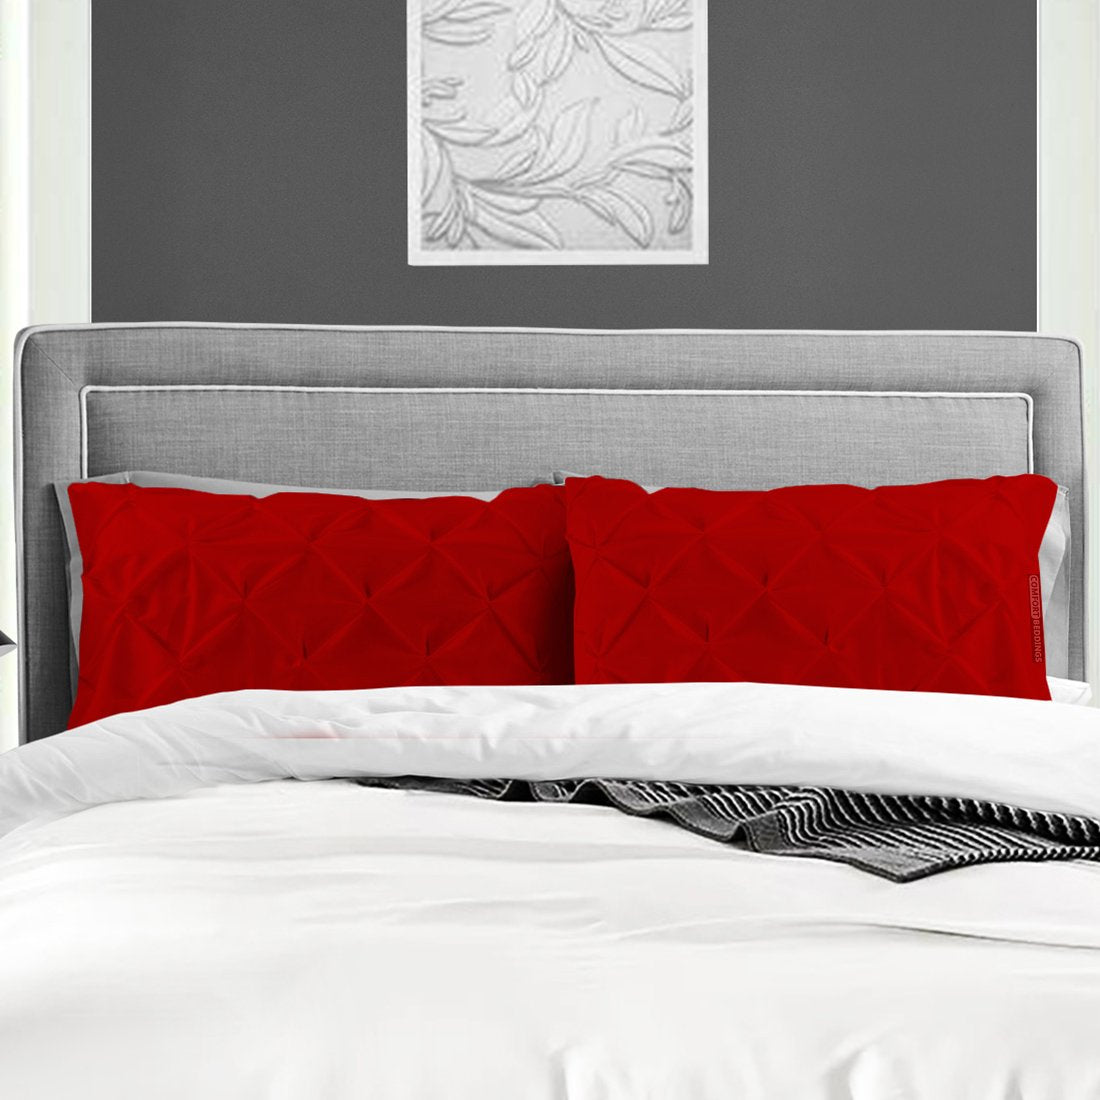 Blood Red pinch pillow cases